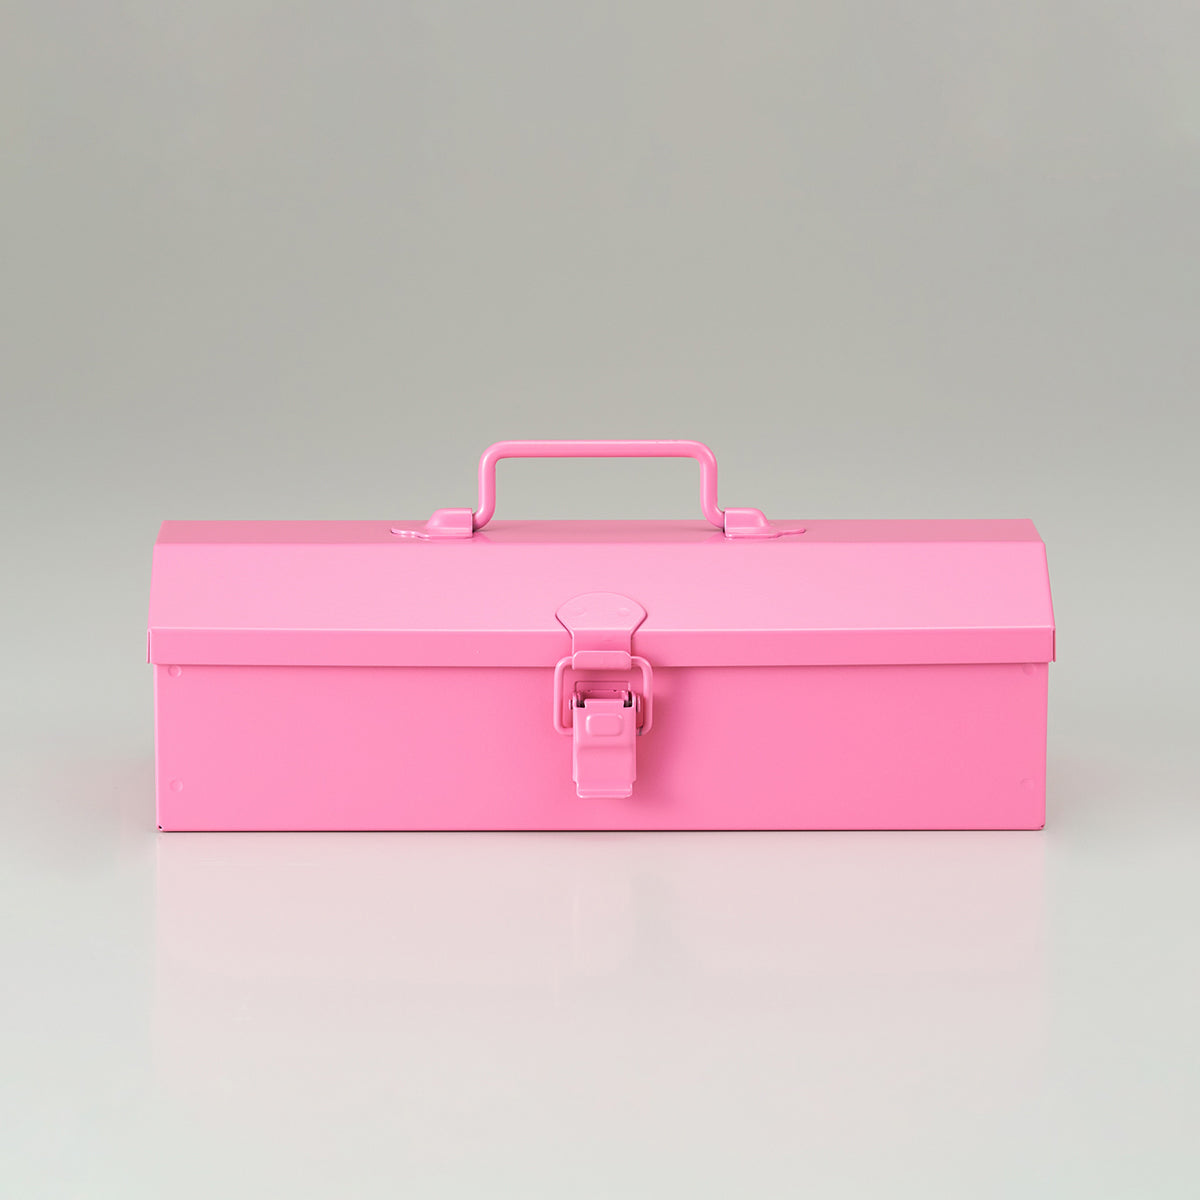 Cobako Mini Box PINK  / Y-17 - The Outsiders